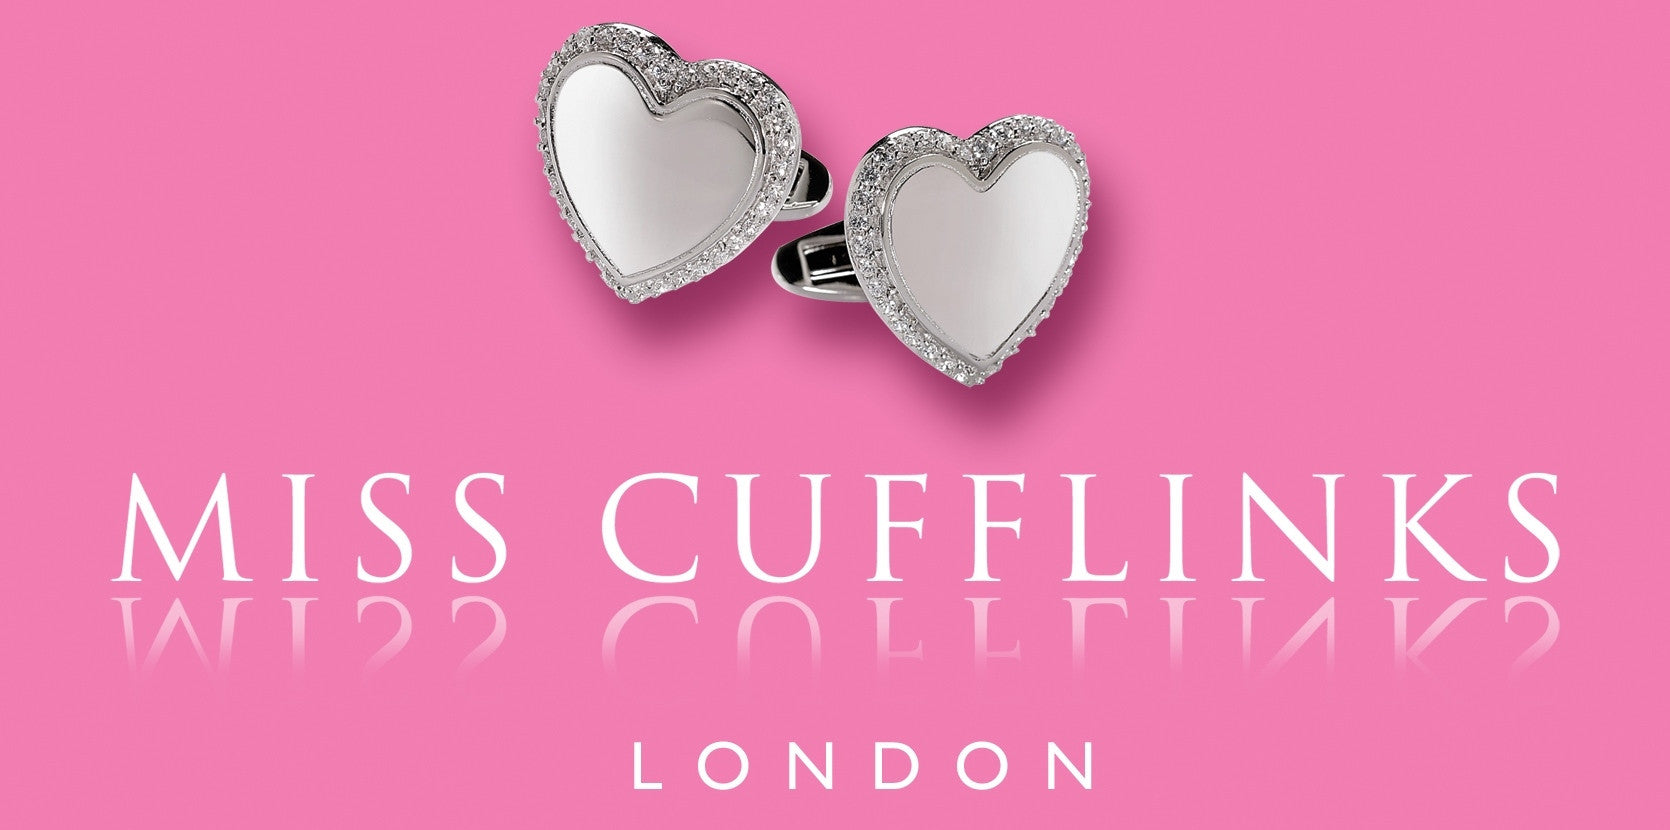 Cufflinks for ladies